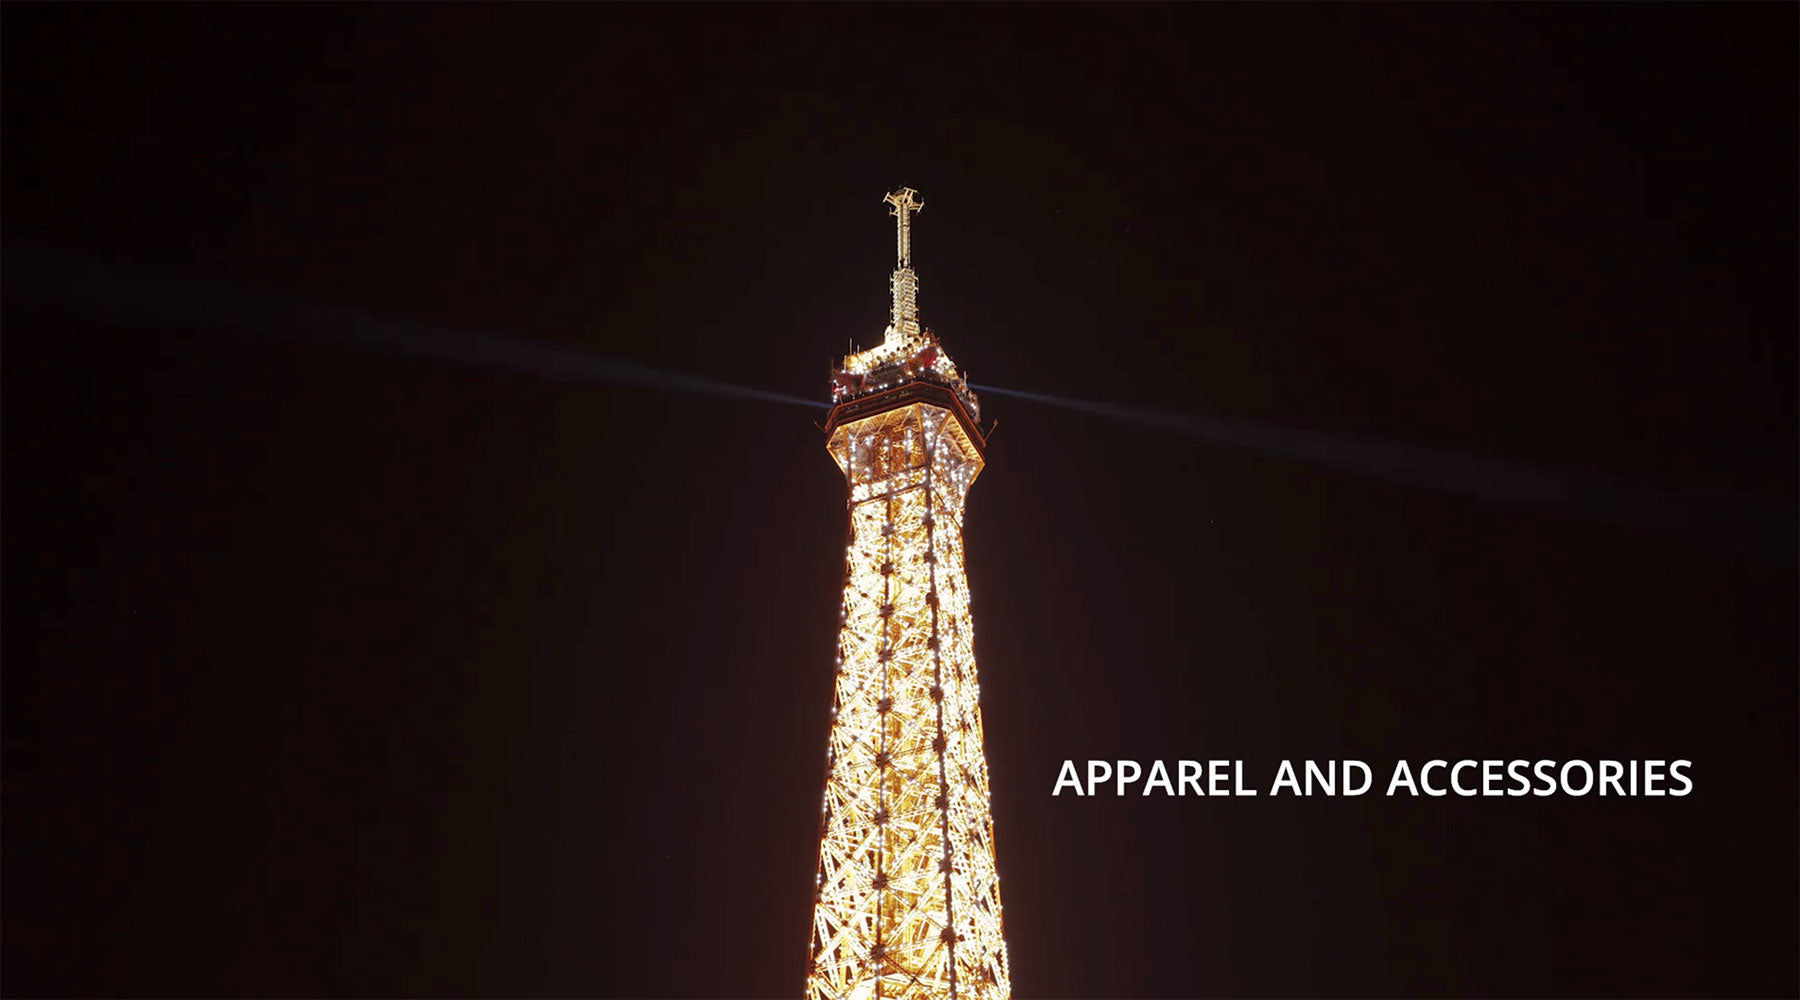 The Paris Store Brand Ad Sample 4